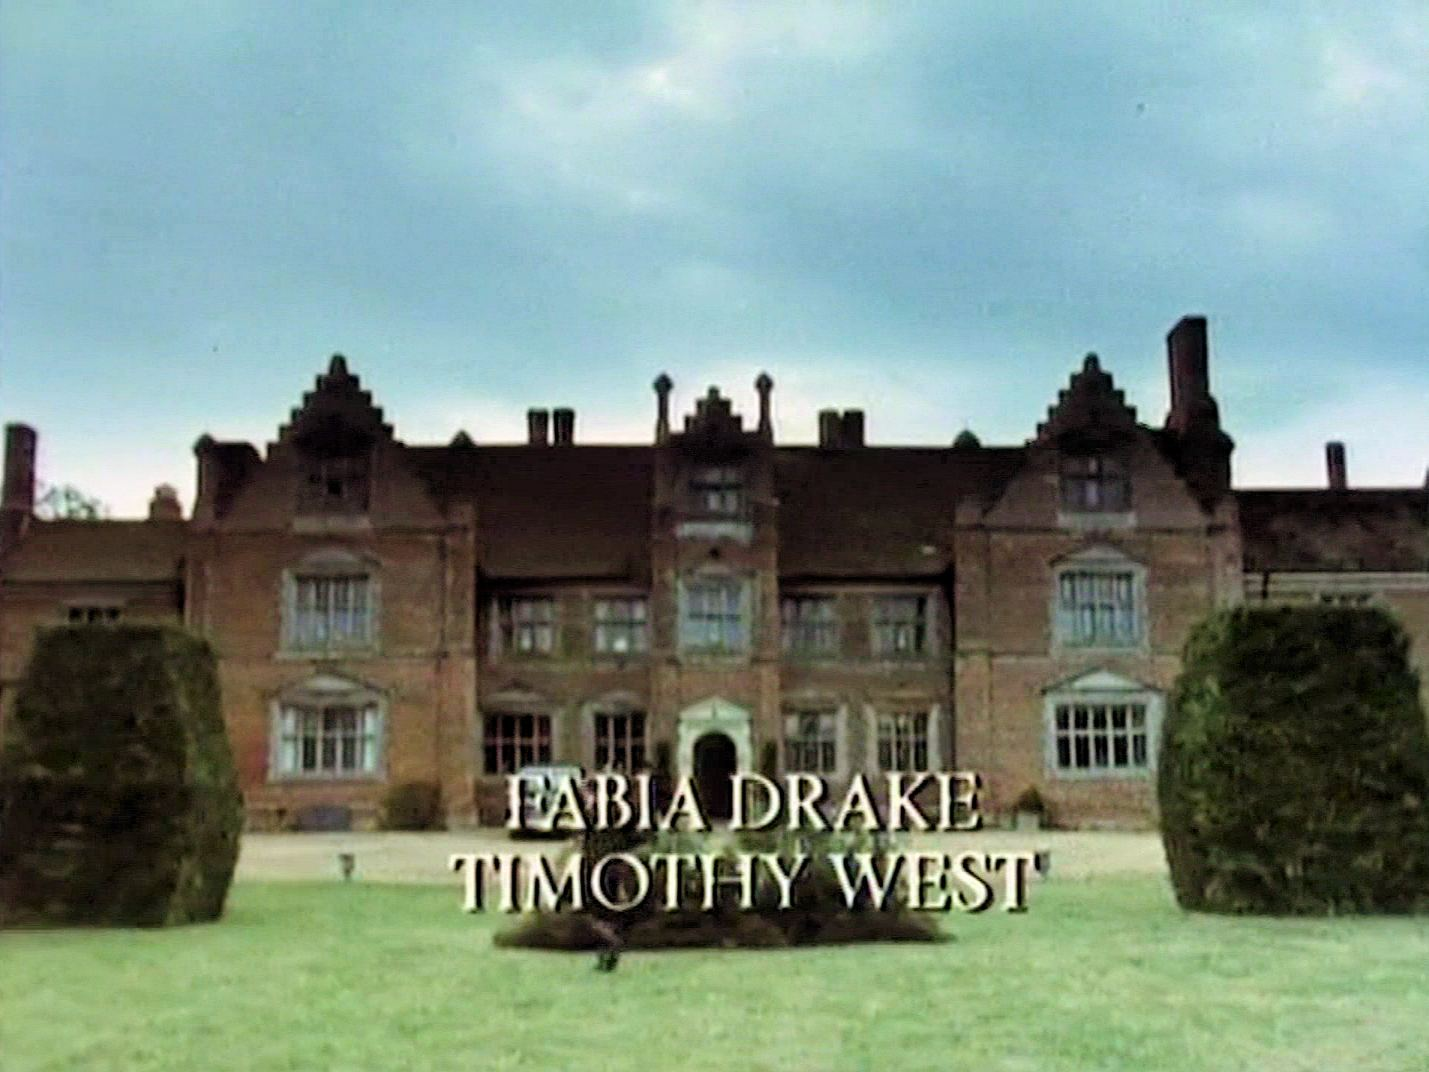 Main title from the 1987 'A Pocket Full of Rye' episode of Agatha Christie's Miss Marple (1984-1992) (5). Fabia Drake, Timothy West